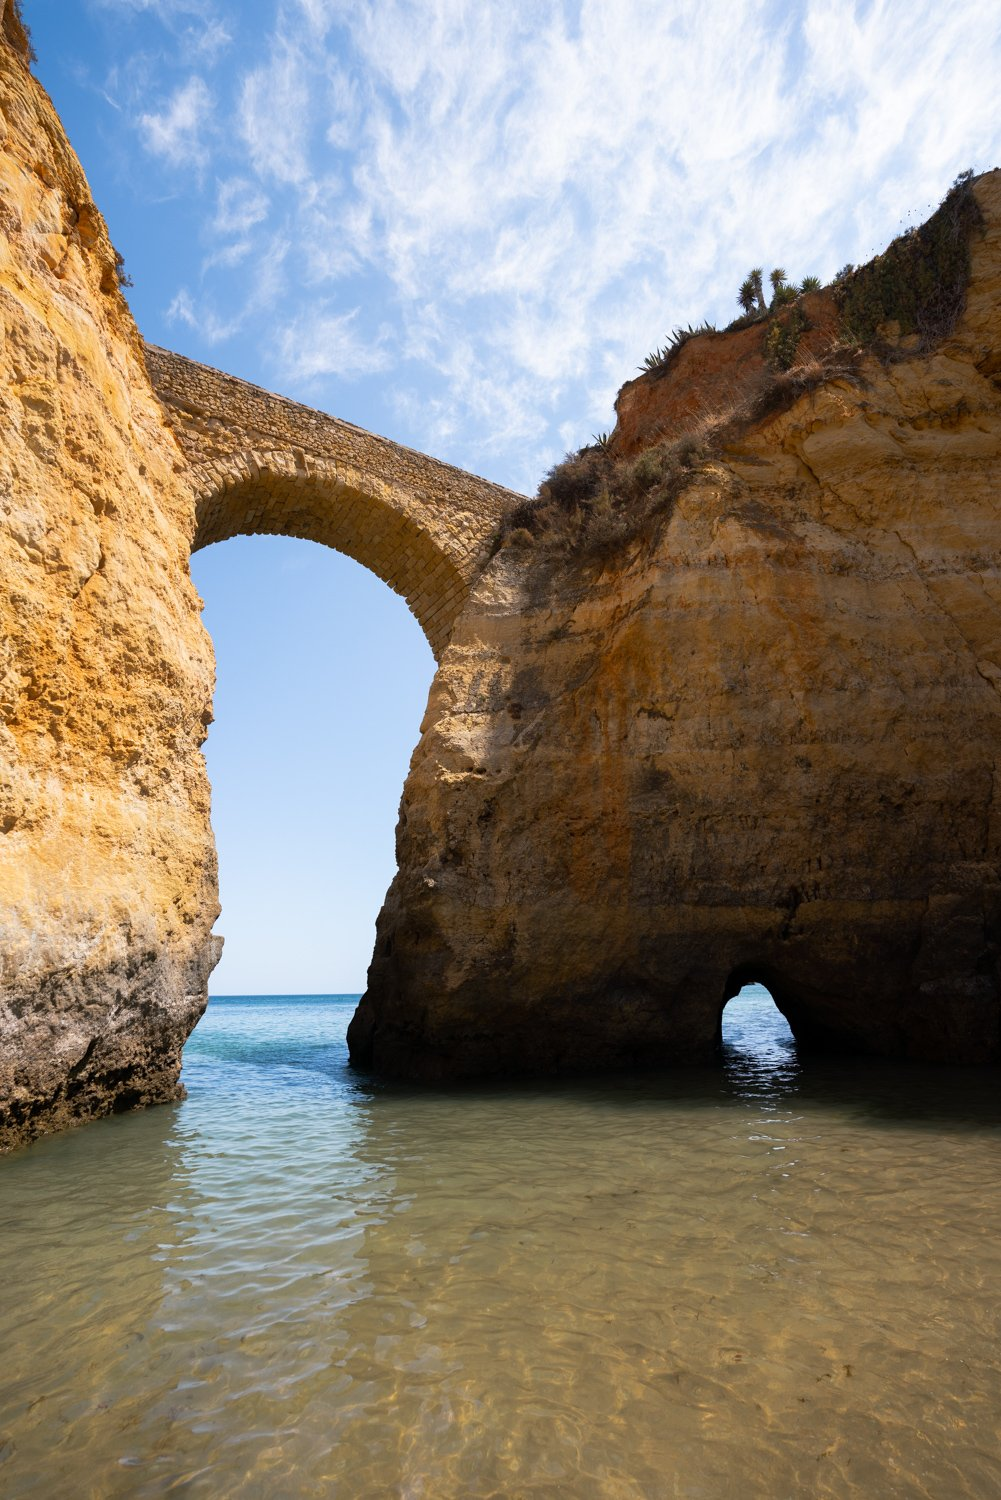 Big arch connecting cliffs along Lagos coast